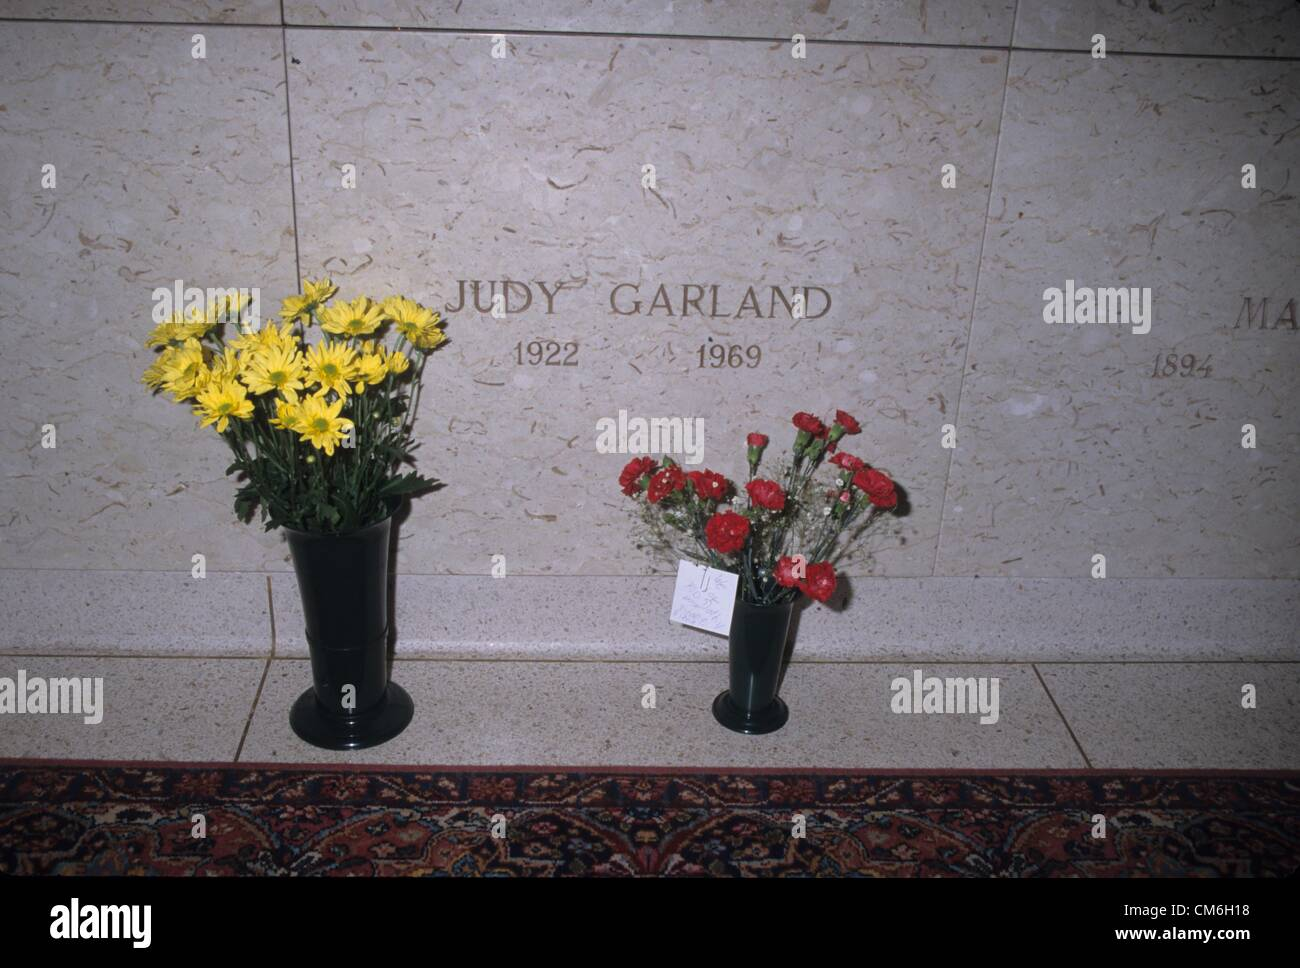 JUDY GARLAND's grave at Ferncliff cemetery in Hartsdale ...